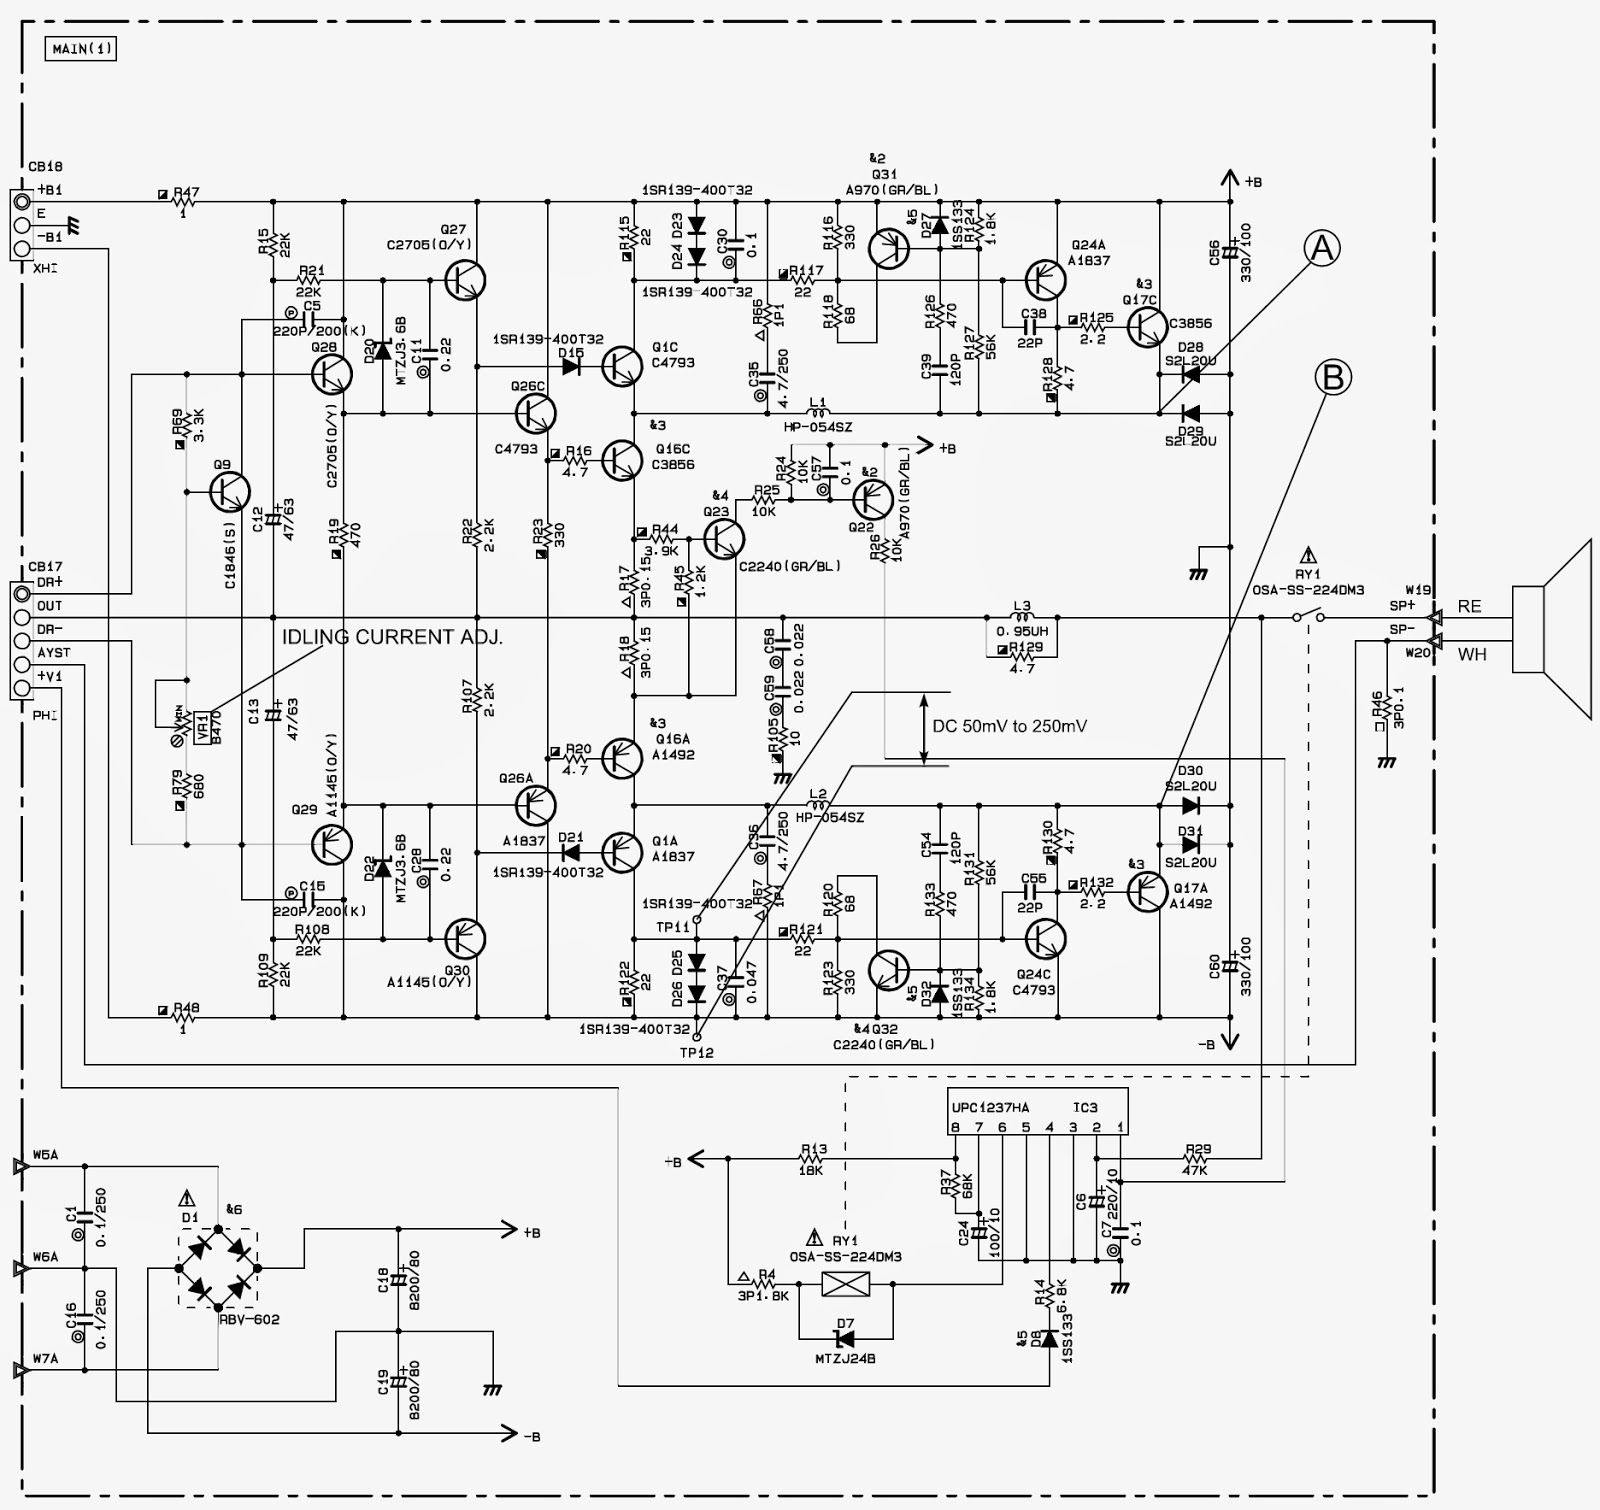 woofer schematic circuit diagram troubleshooting electro help